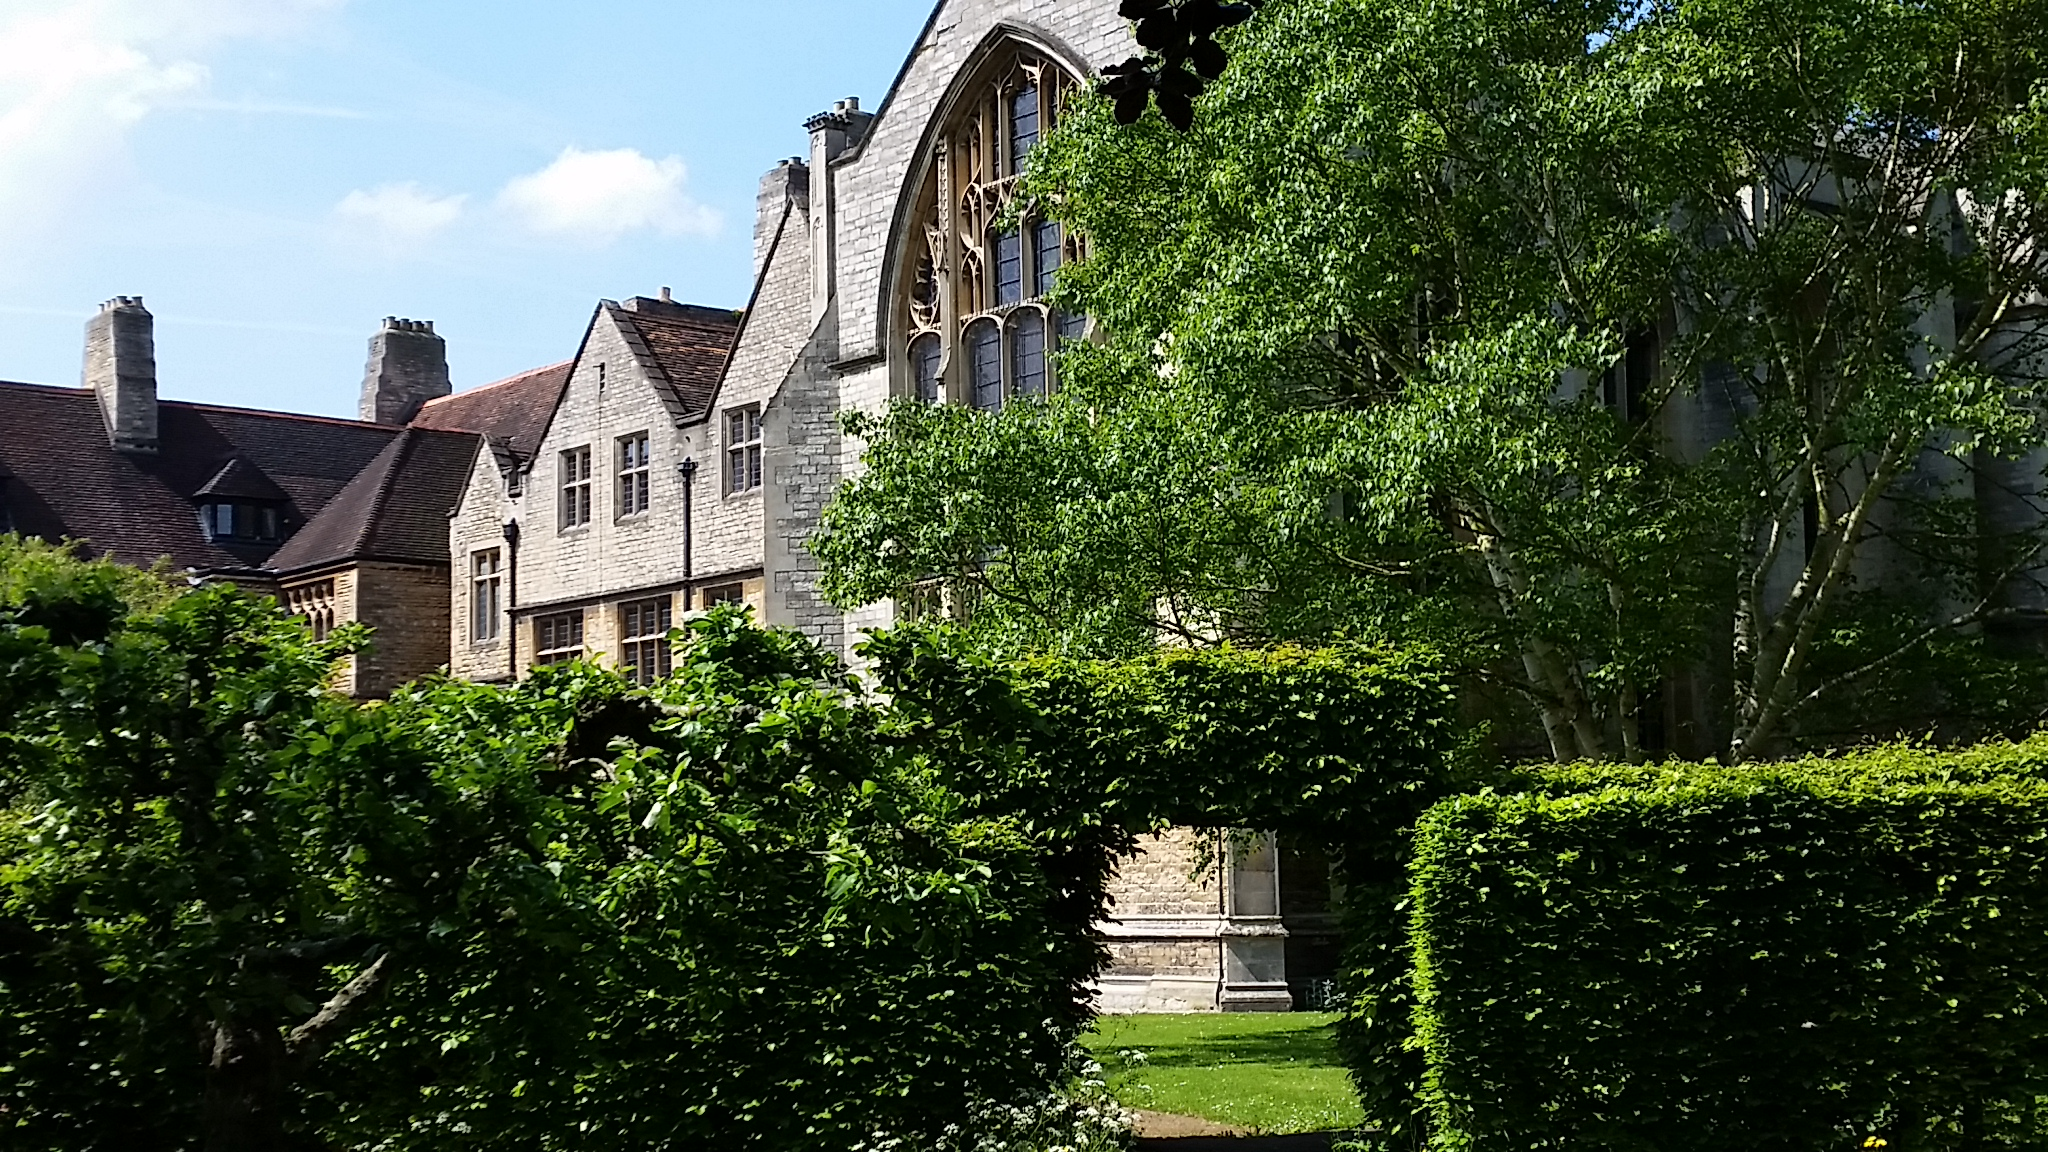 View of The Friary from the Garden